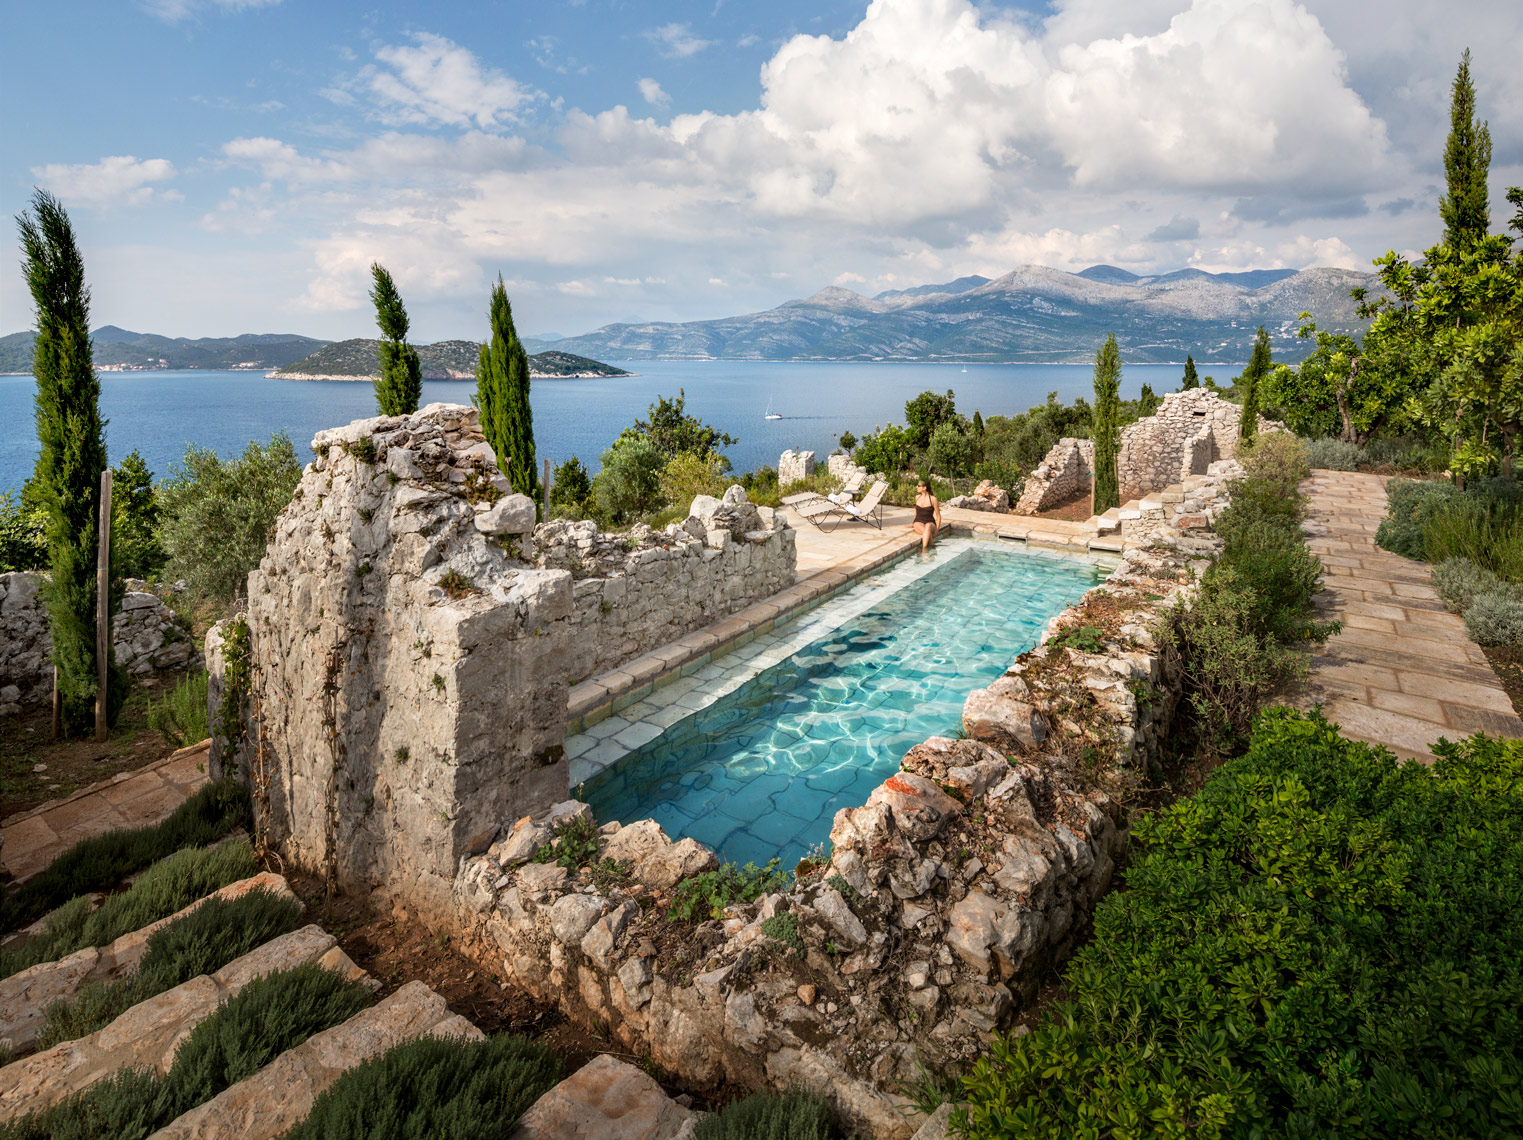 Croatia, Steven Harris, Swimming Pool, Outdoor Living